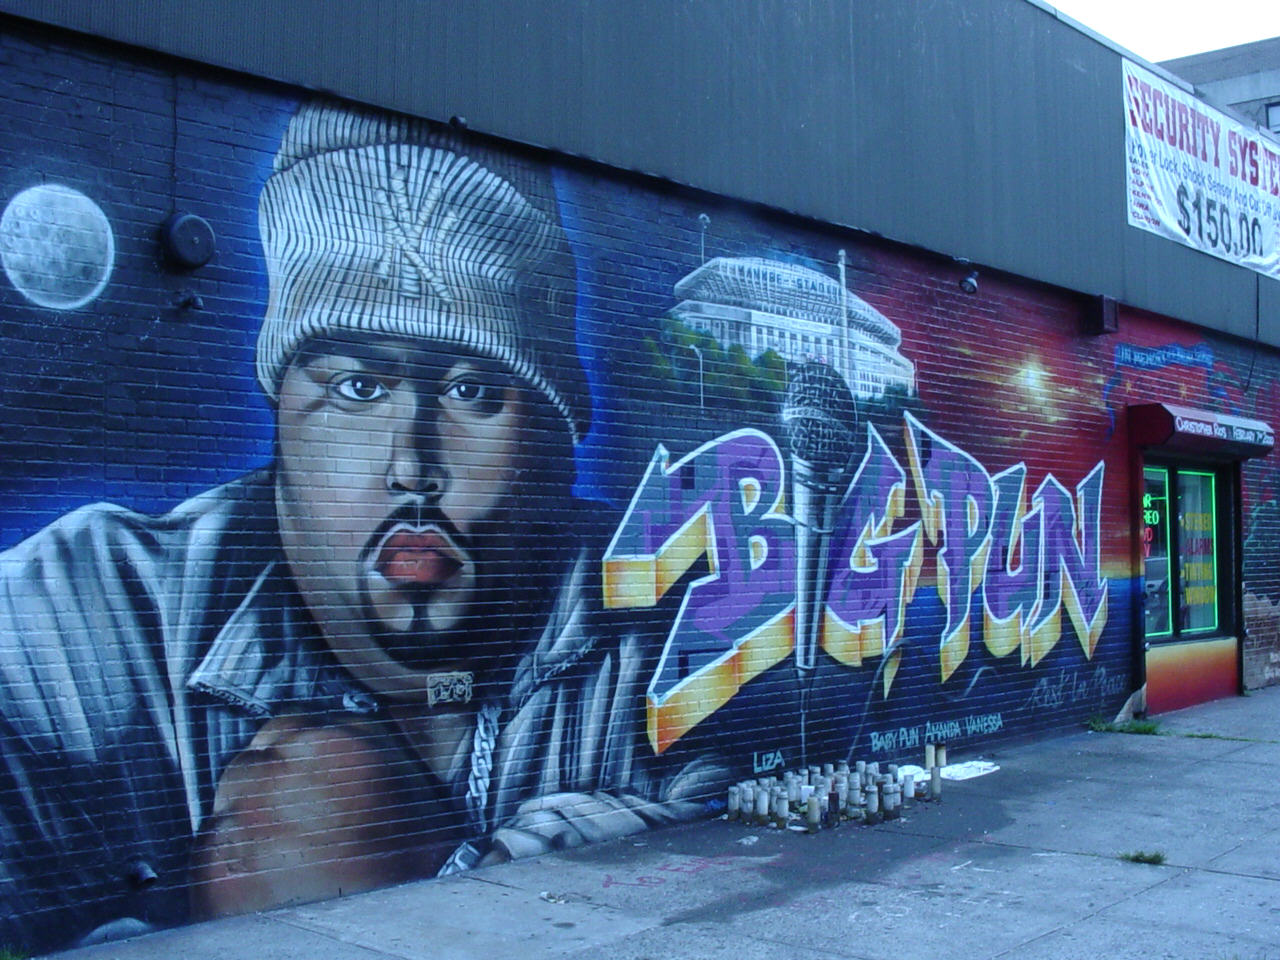 The kool skool tats cru big pun mural remix for Eminem wall mural